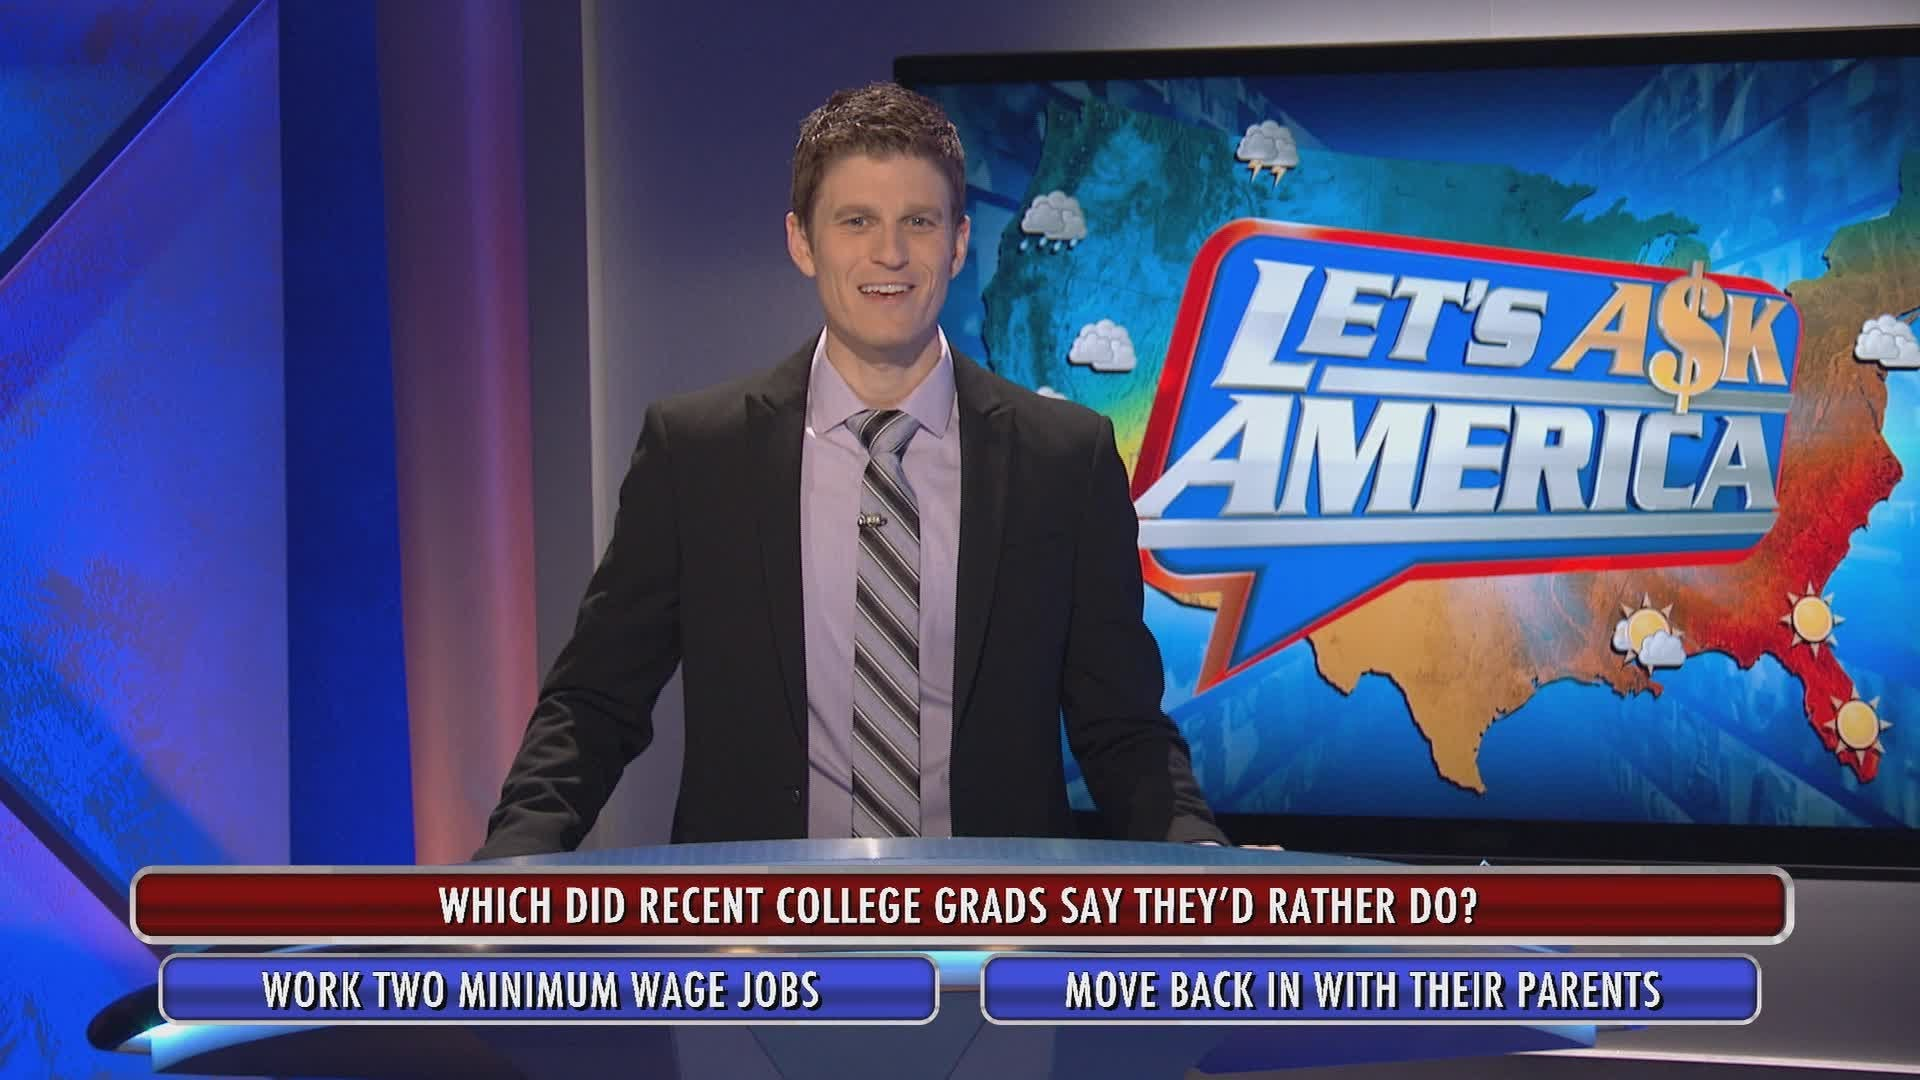 Let's Ask America host Kevin Pereira